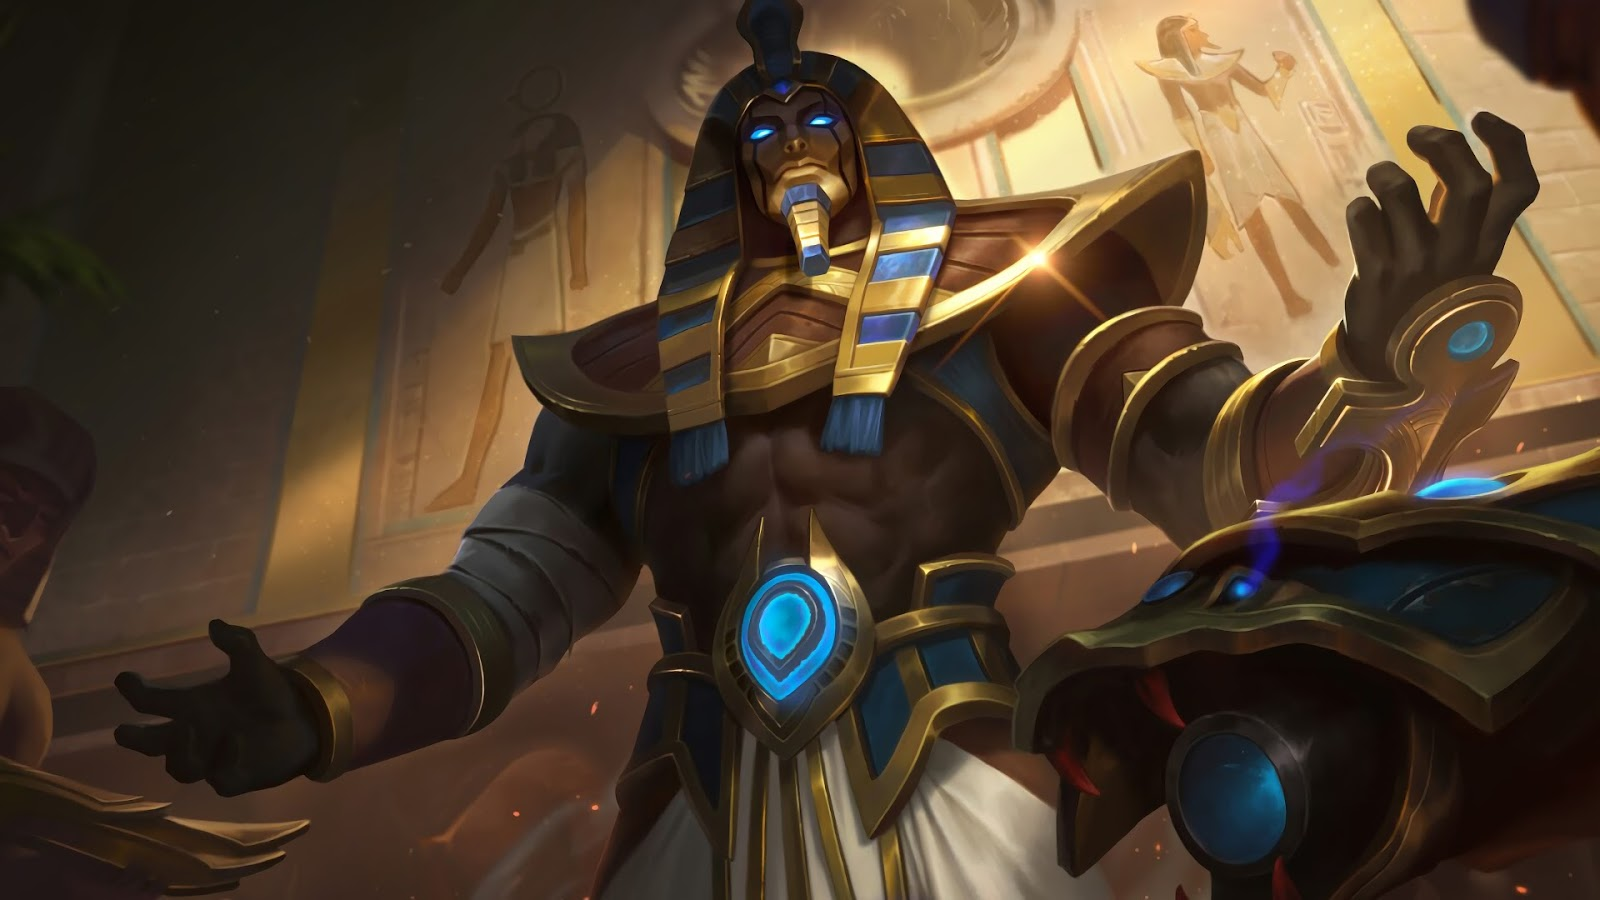 Wallpaper Roger Anubis Skin Mobile Legends HD for PC